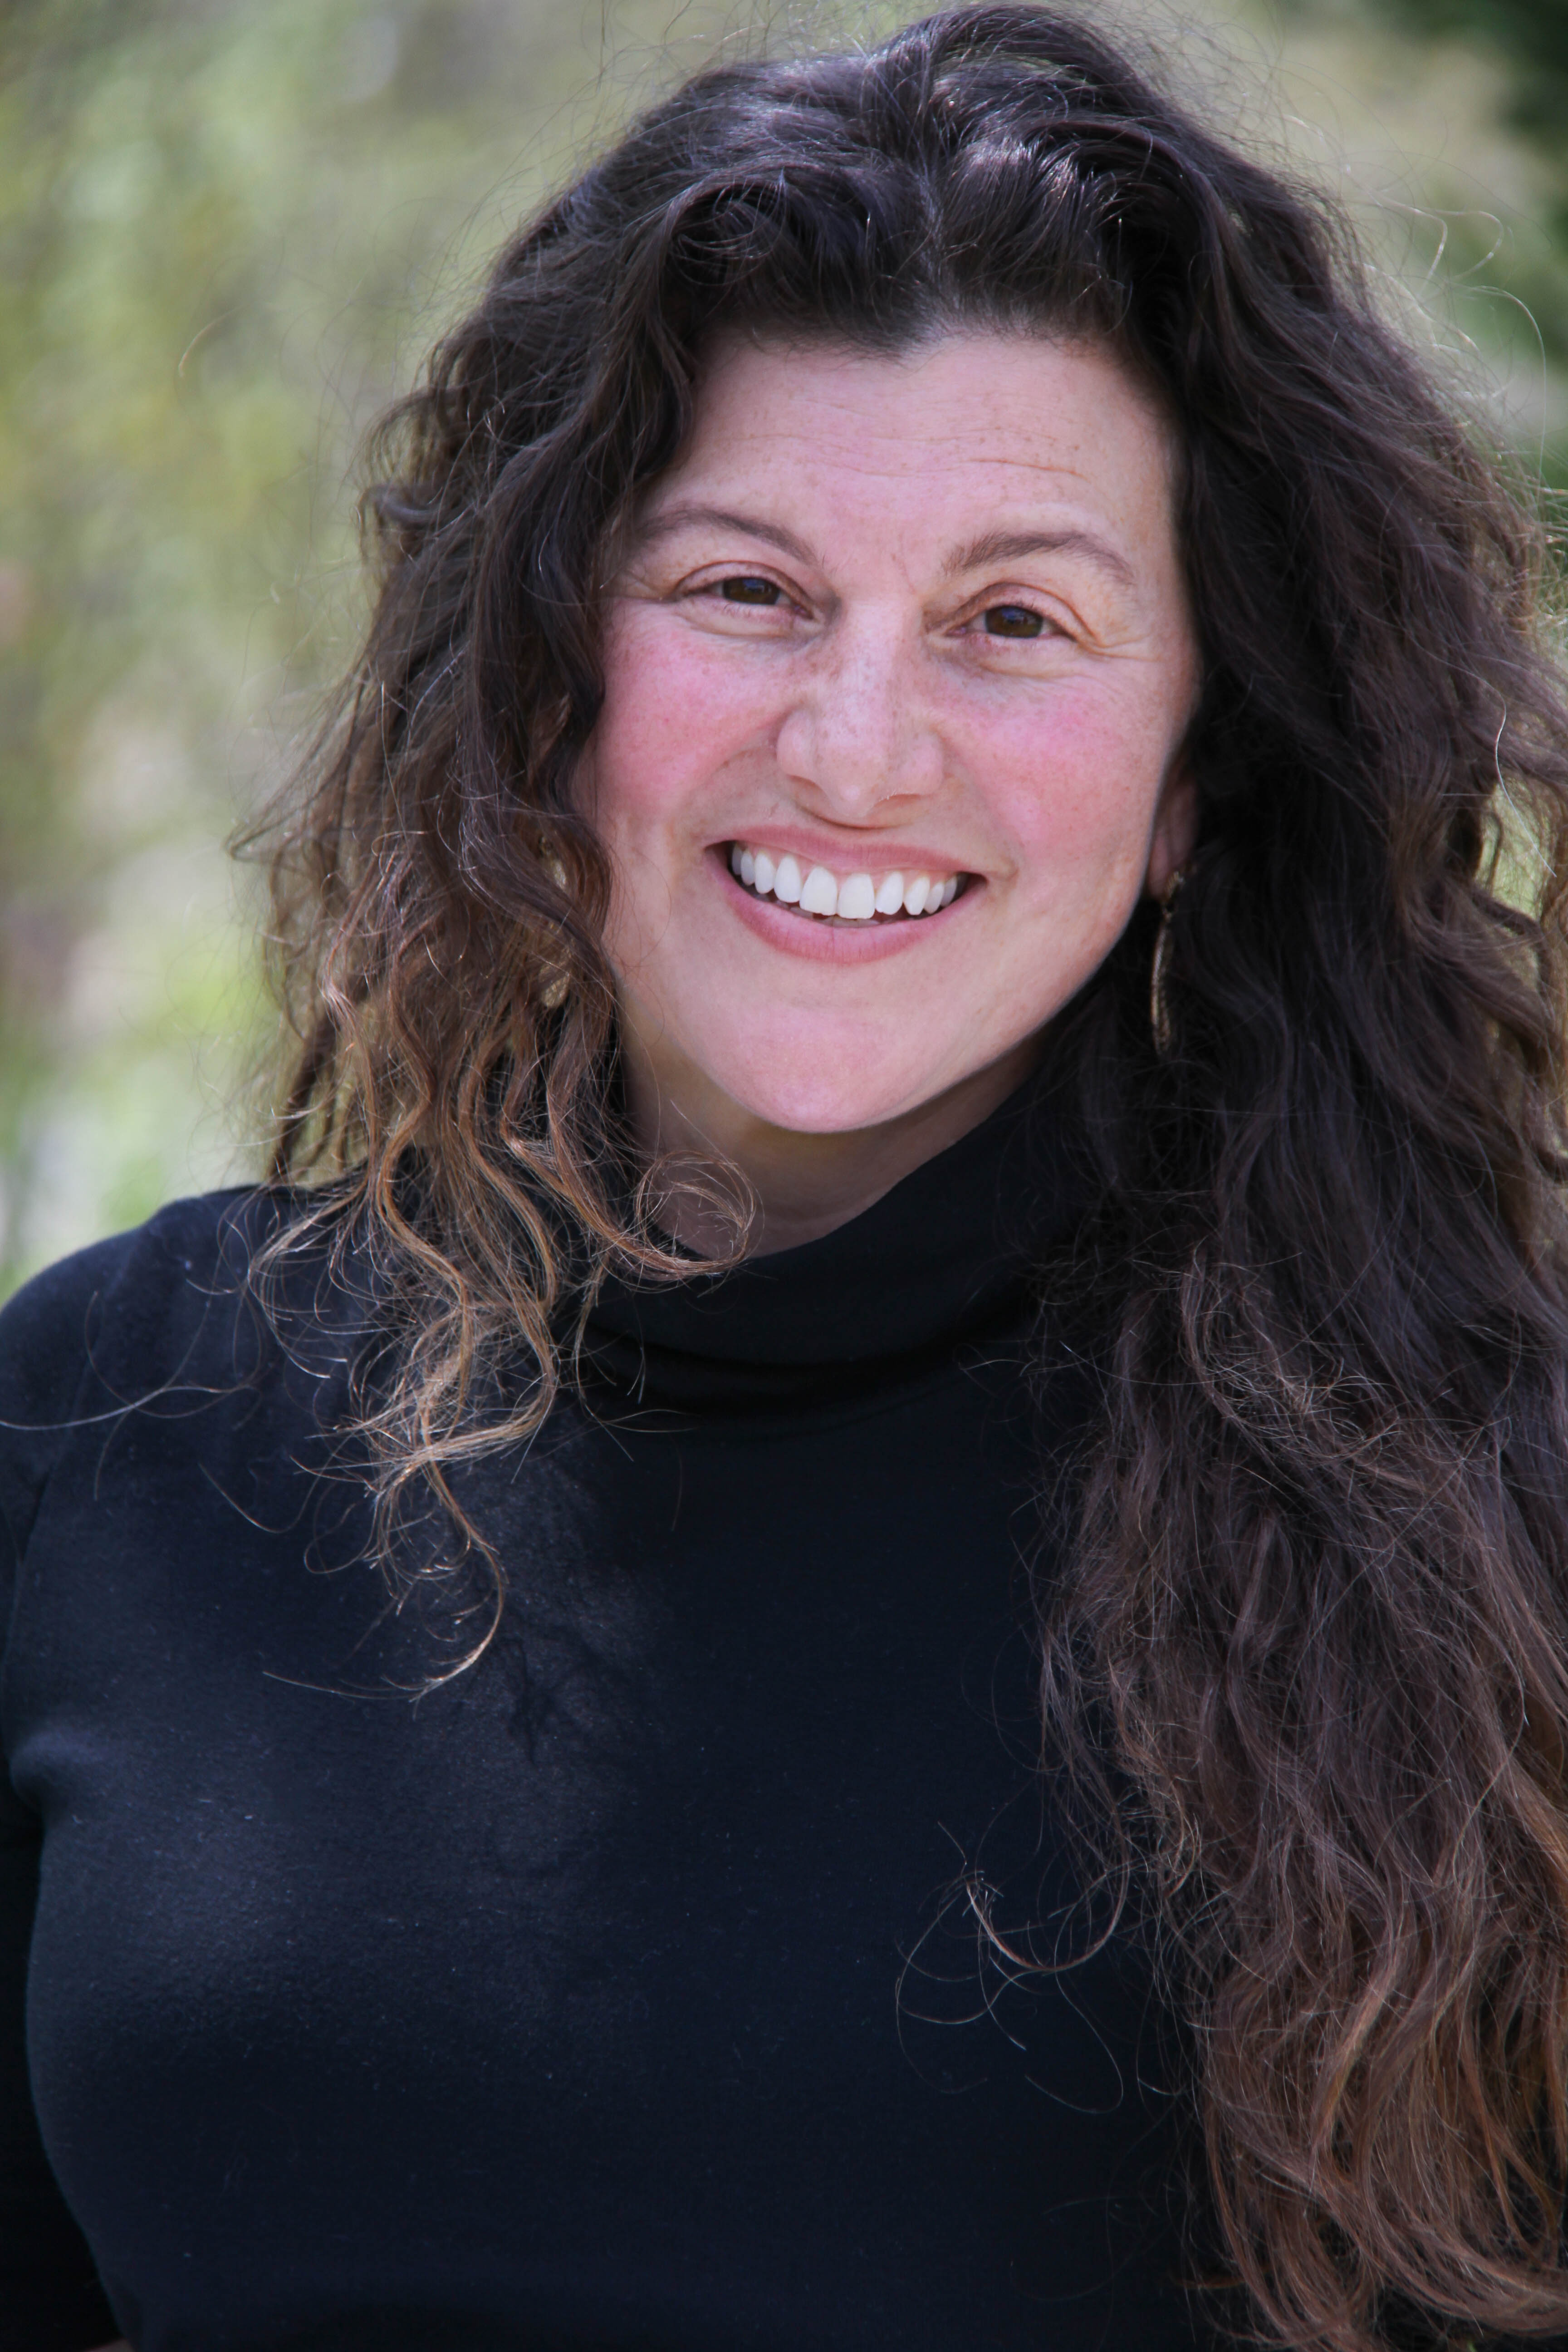 Lisa Condino smiles at the camera. Her long, brown, curly hair drapes and swirls around her face and over her shoulders. She wears a black sweater.